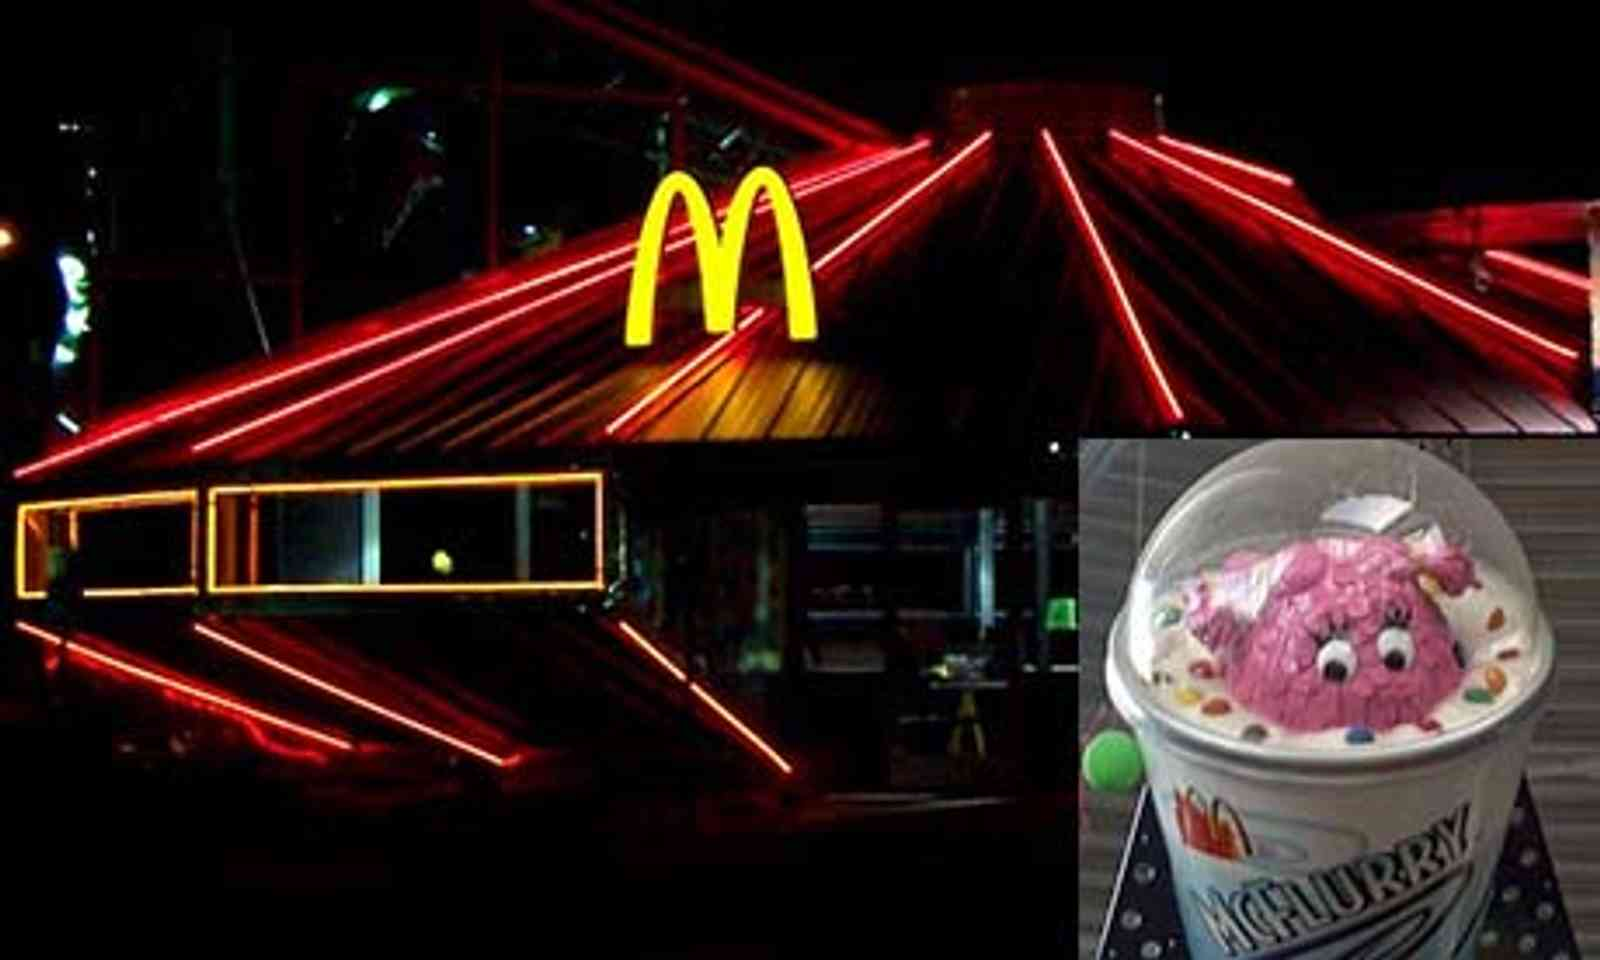 Roswell Maccas